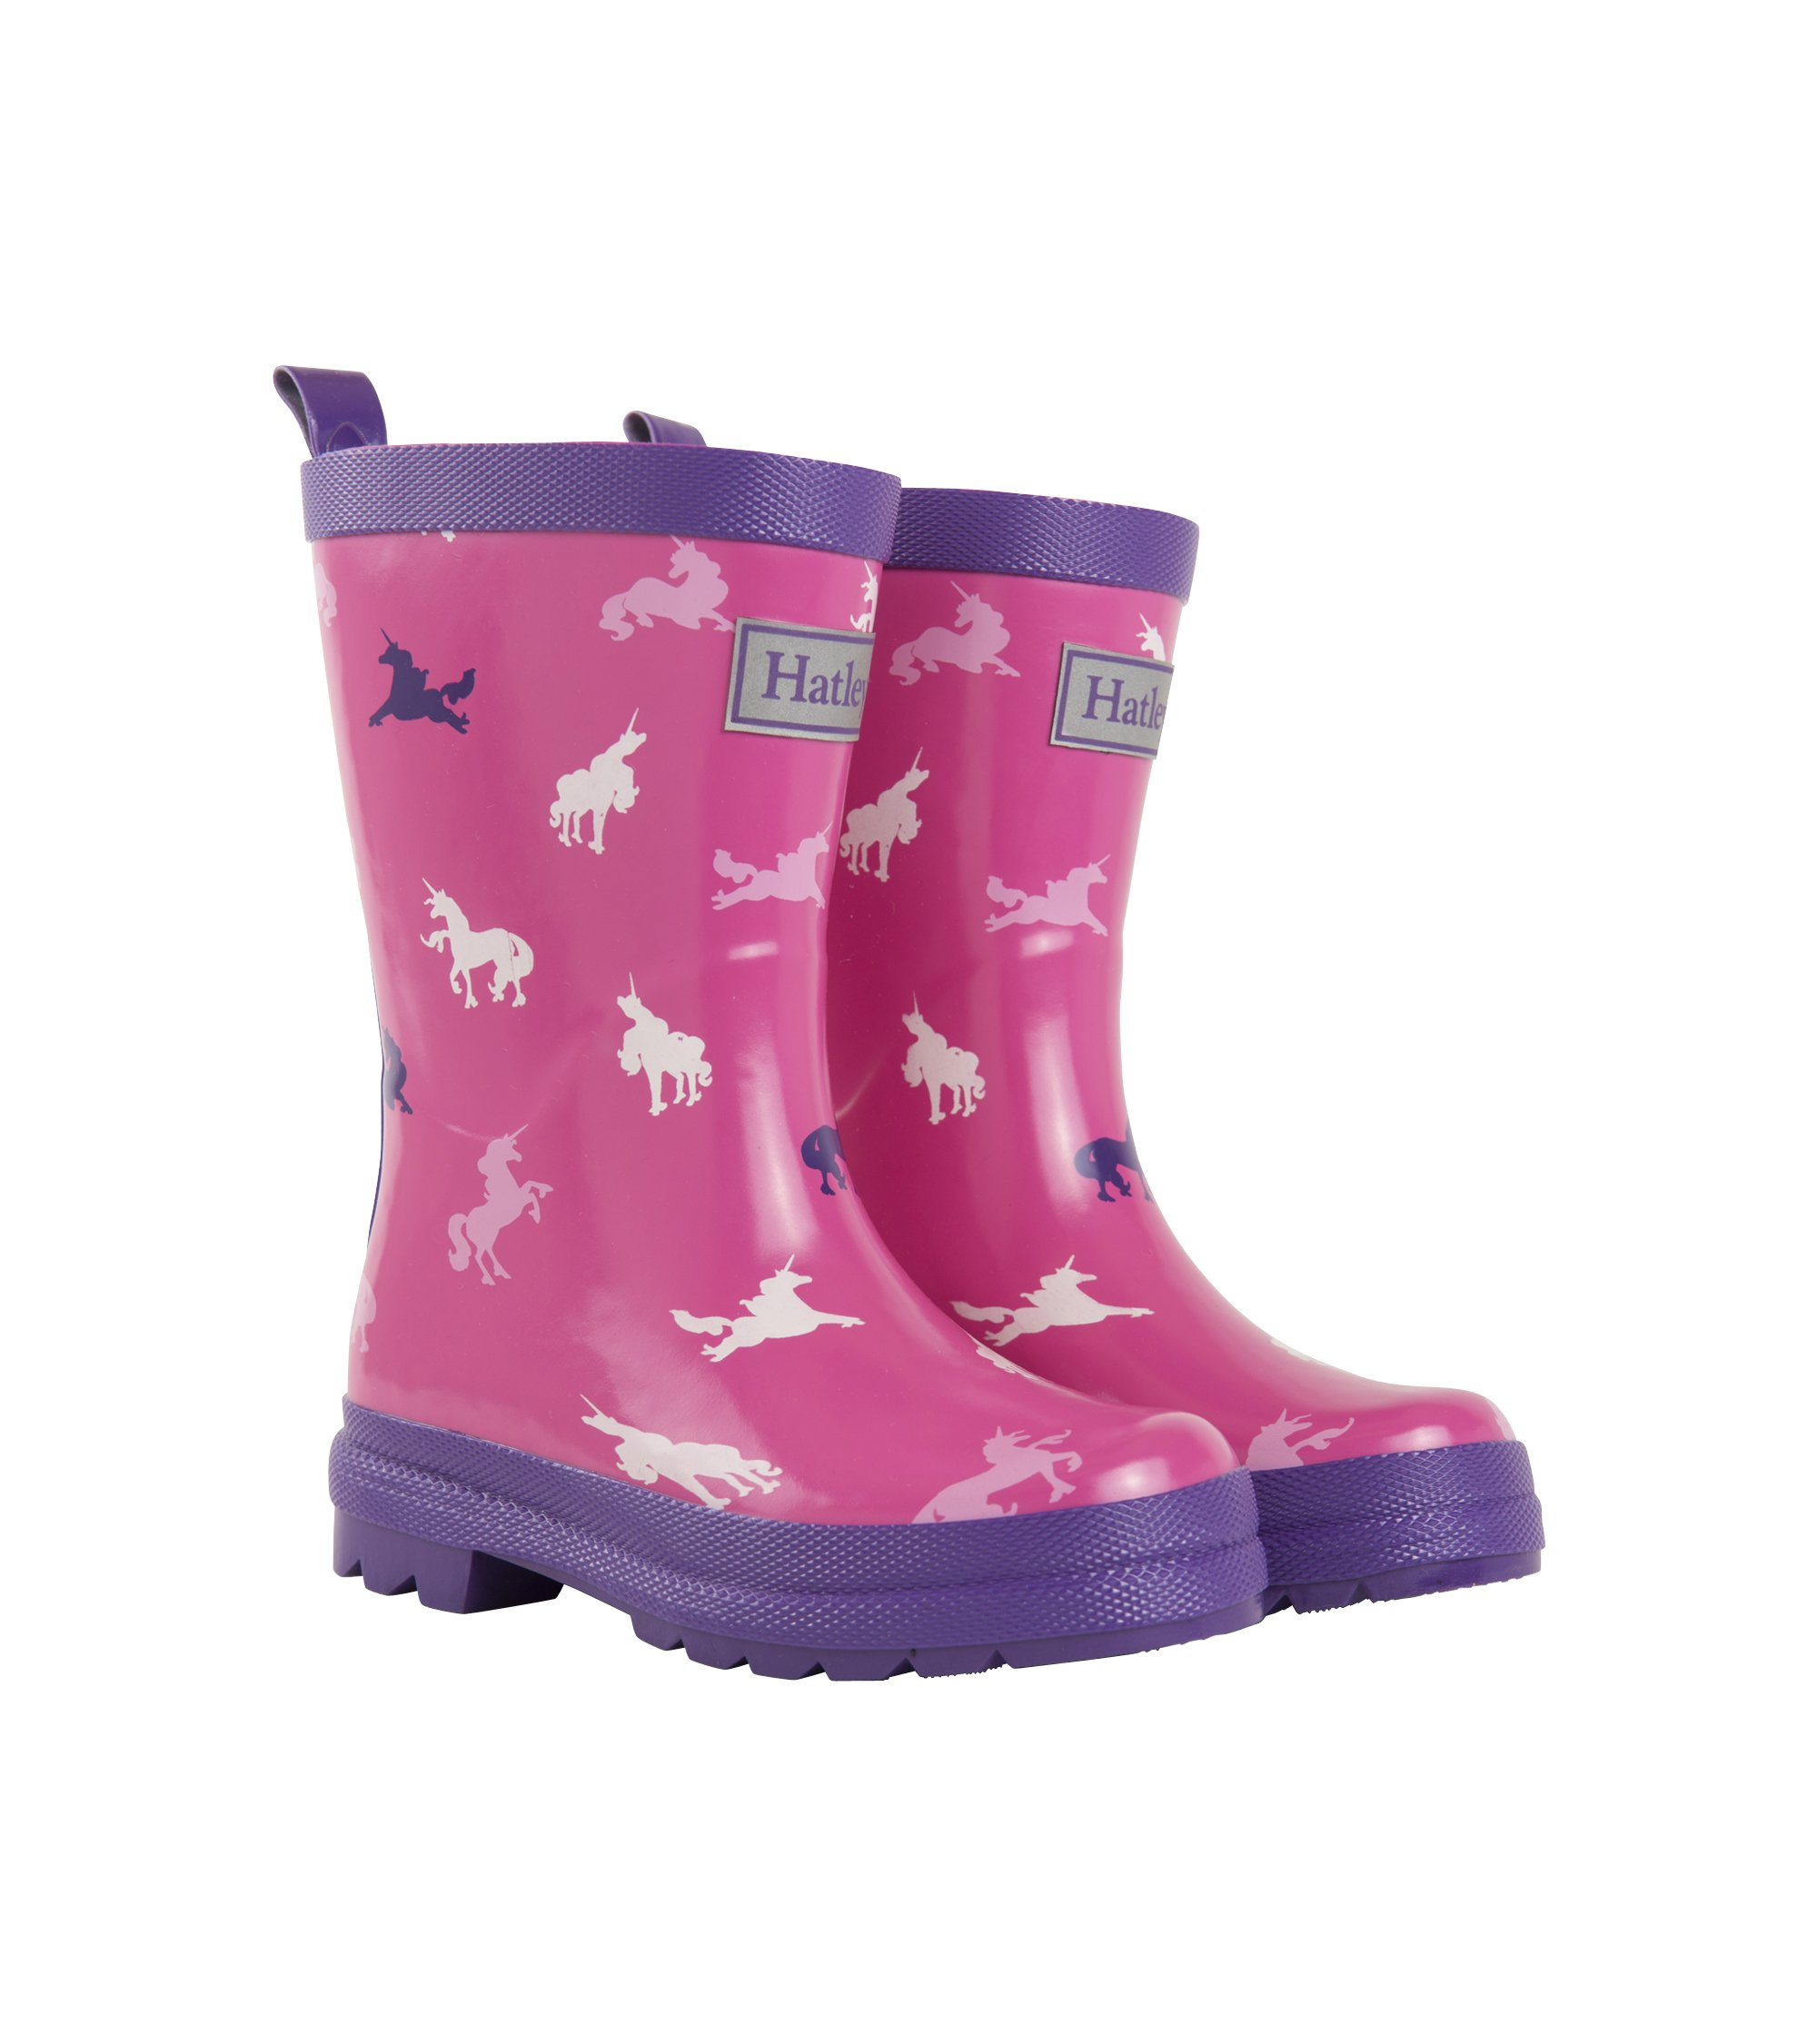 Hatley Girls Printed Rain Boot, Unicorn Silhouettes, 6 M US Toddler by Hatley